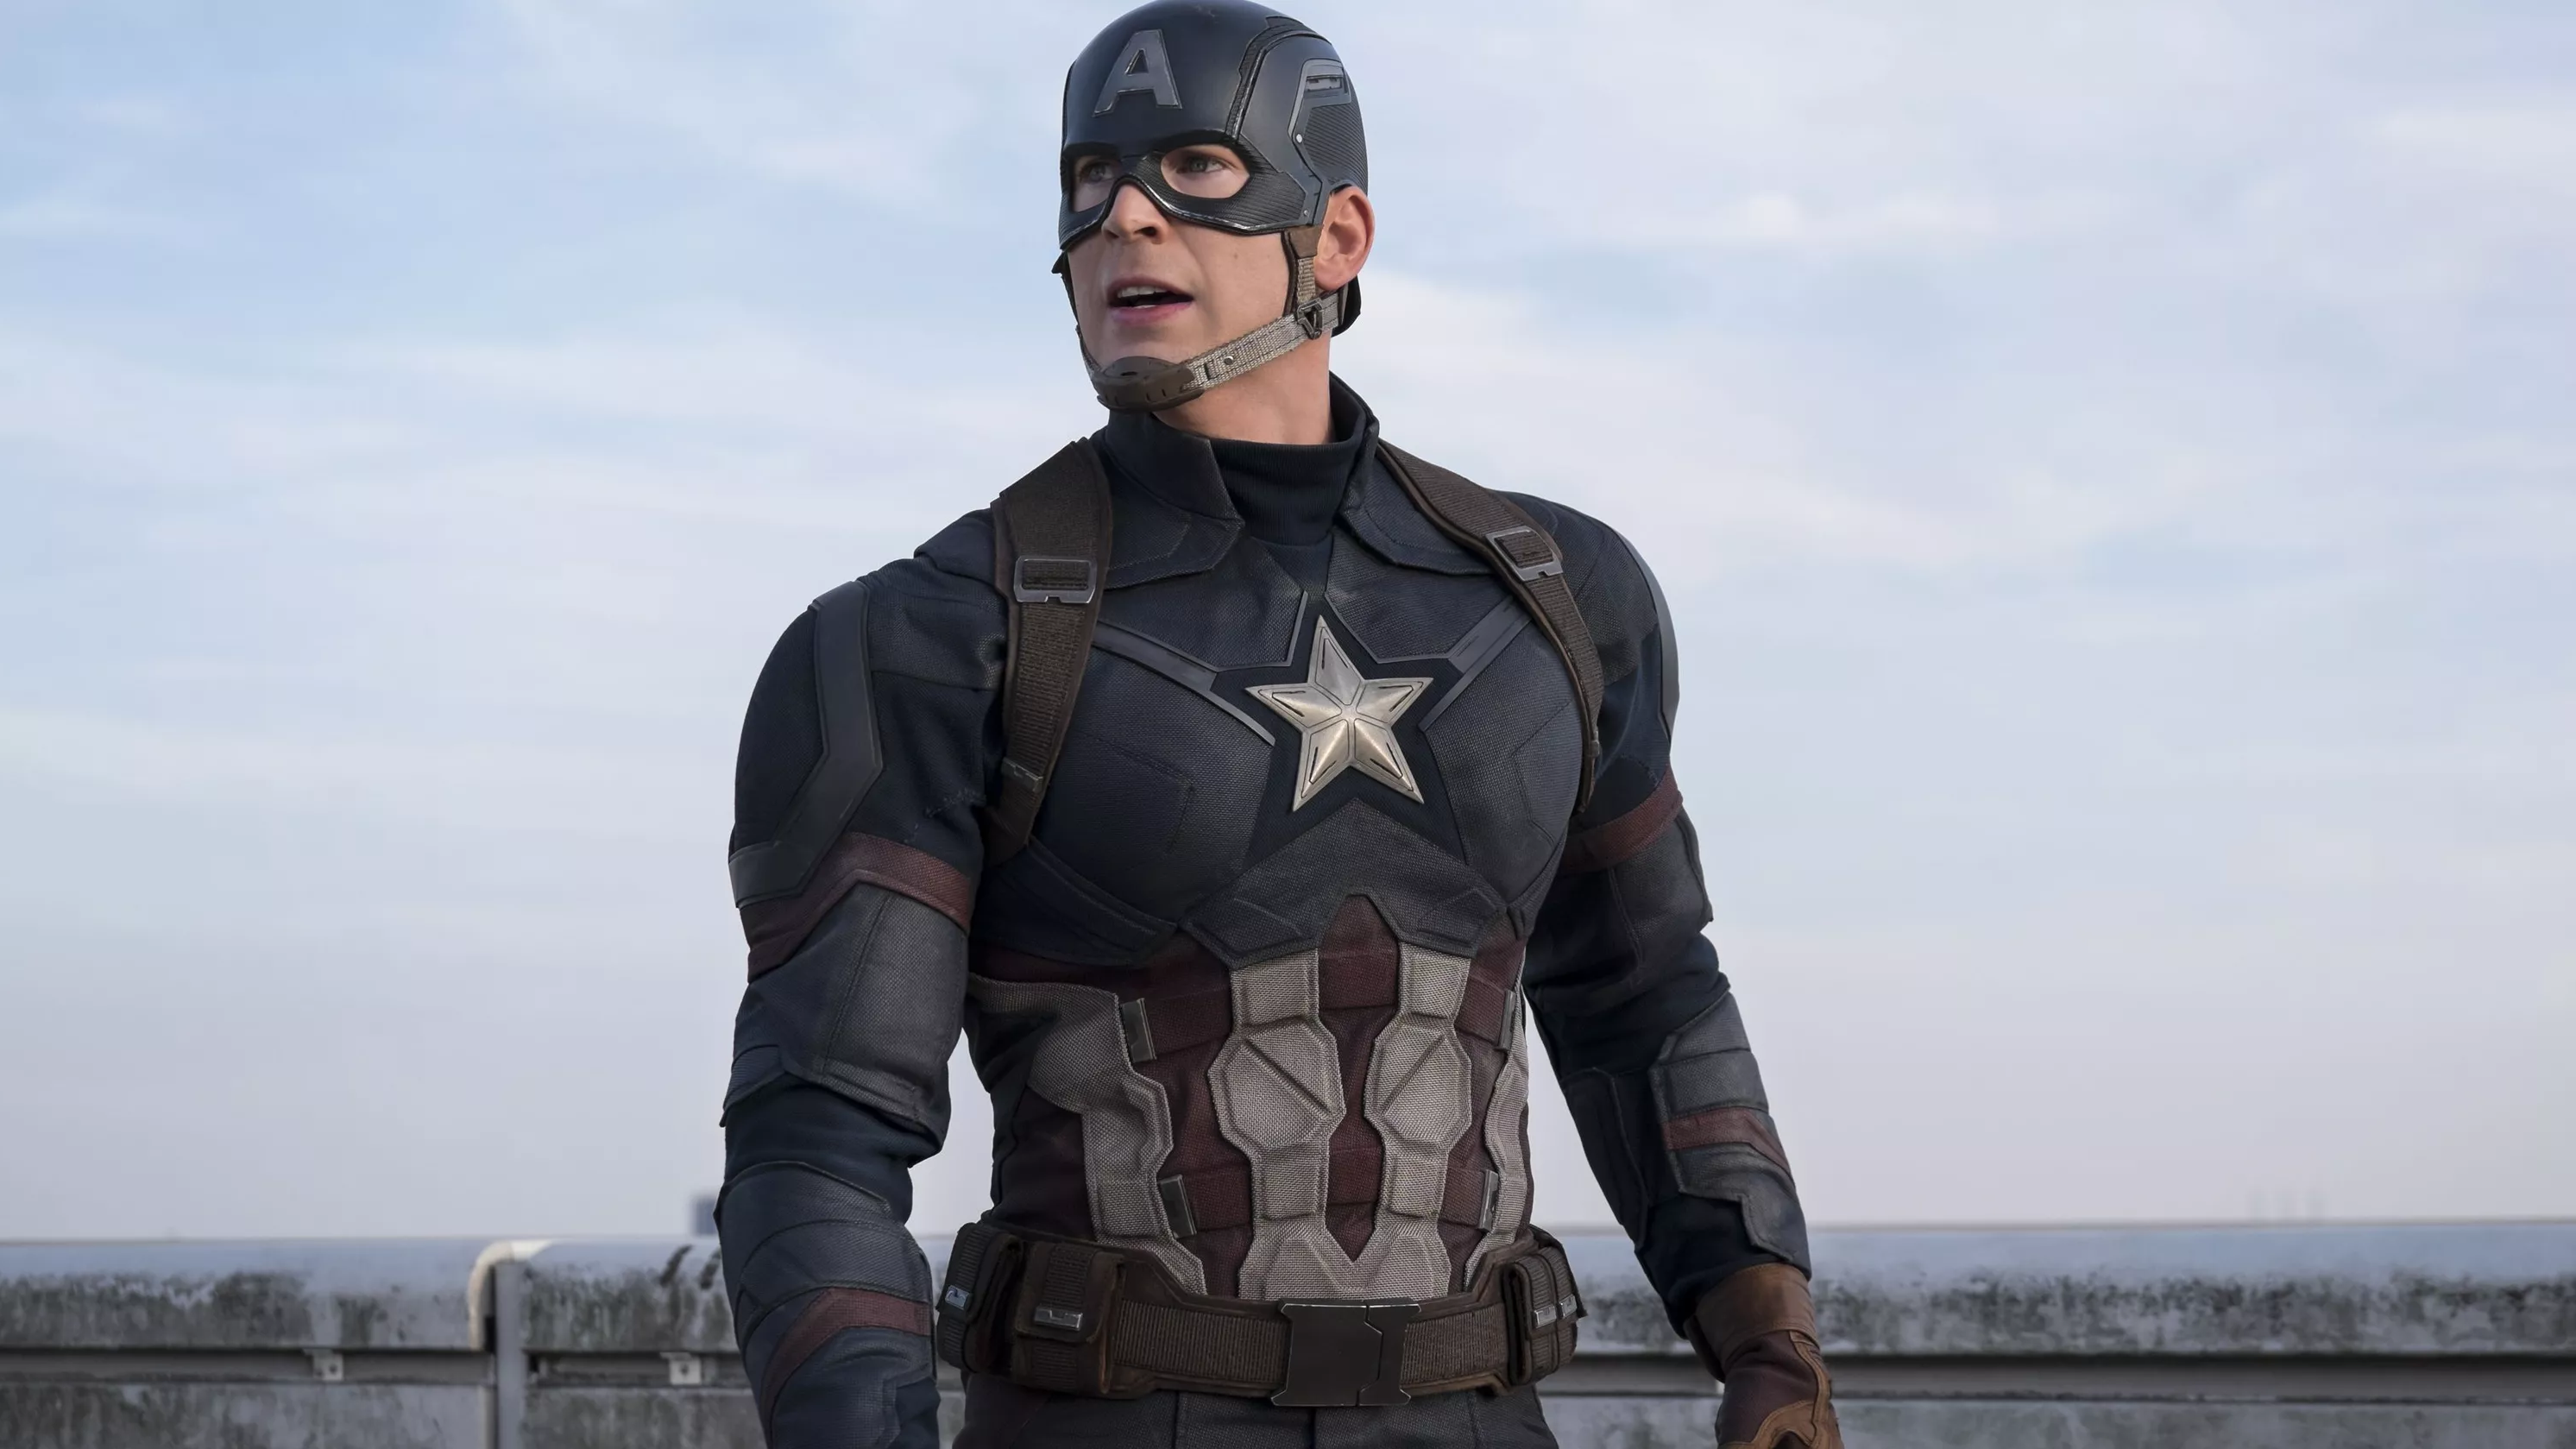 Chris Evans' Last Day On The Avengers 4 Set Was Apparently Not All That Exciting